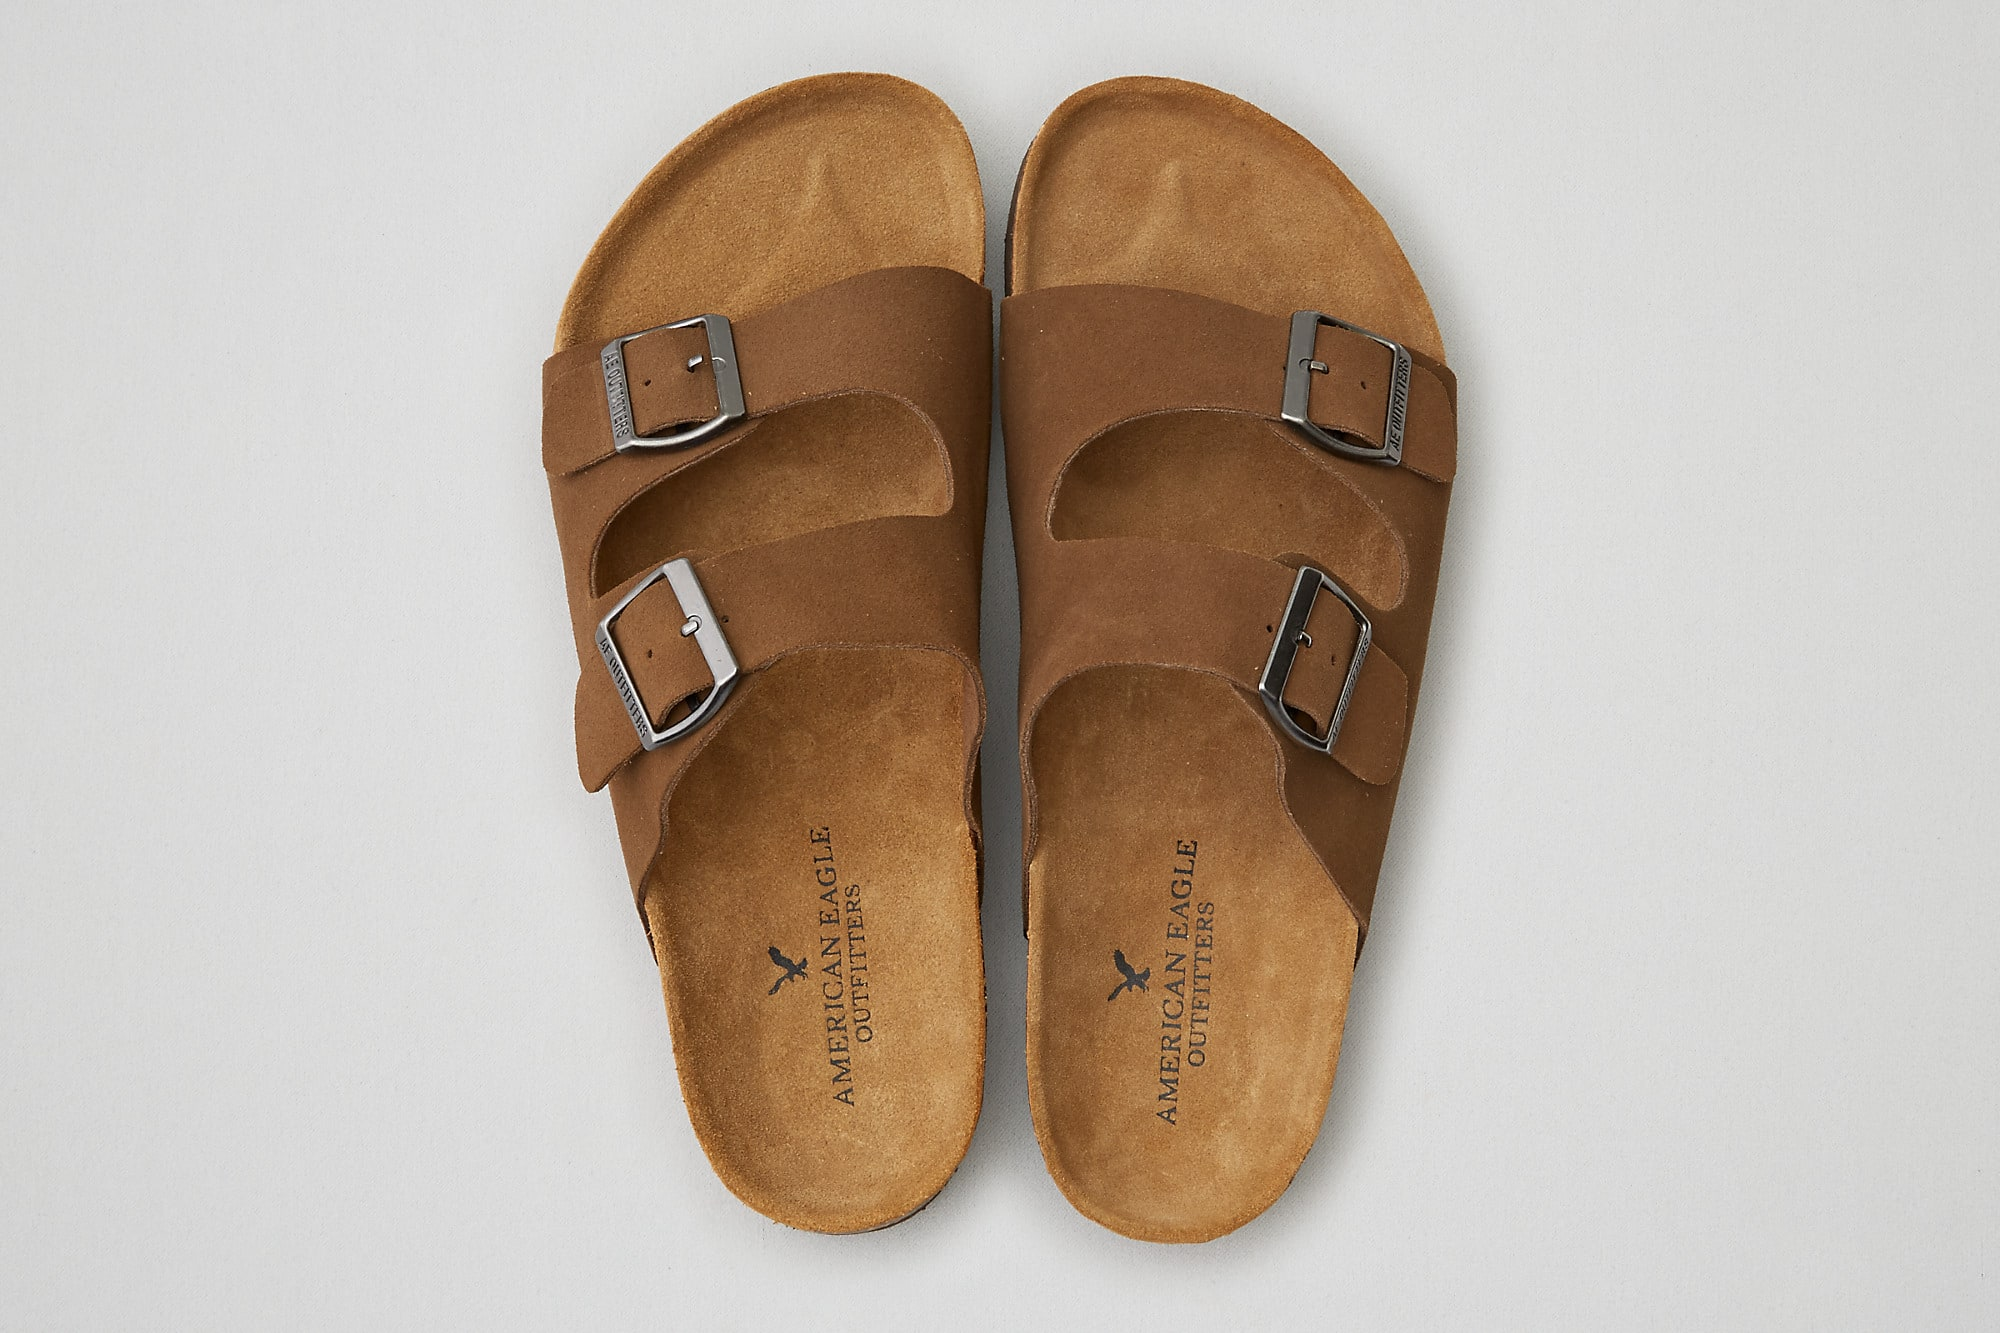 AEO Double Buckle Suede Sandals  $10 & Much More